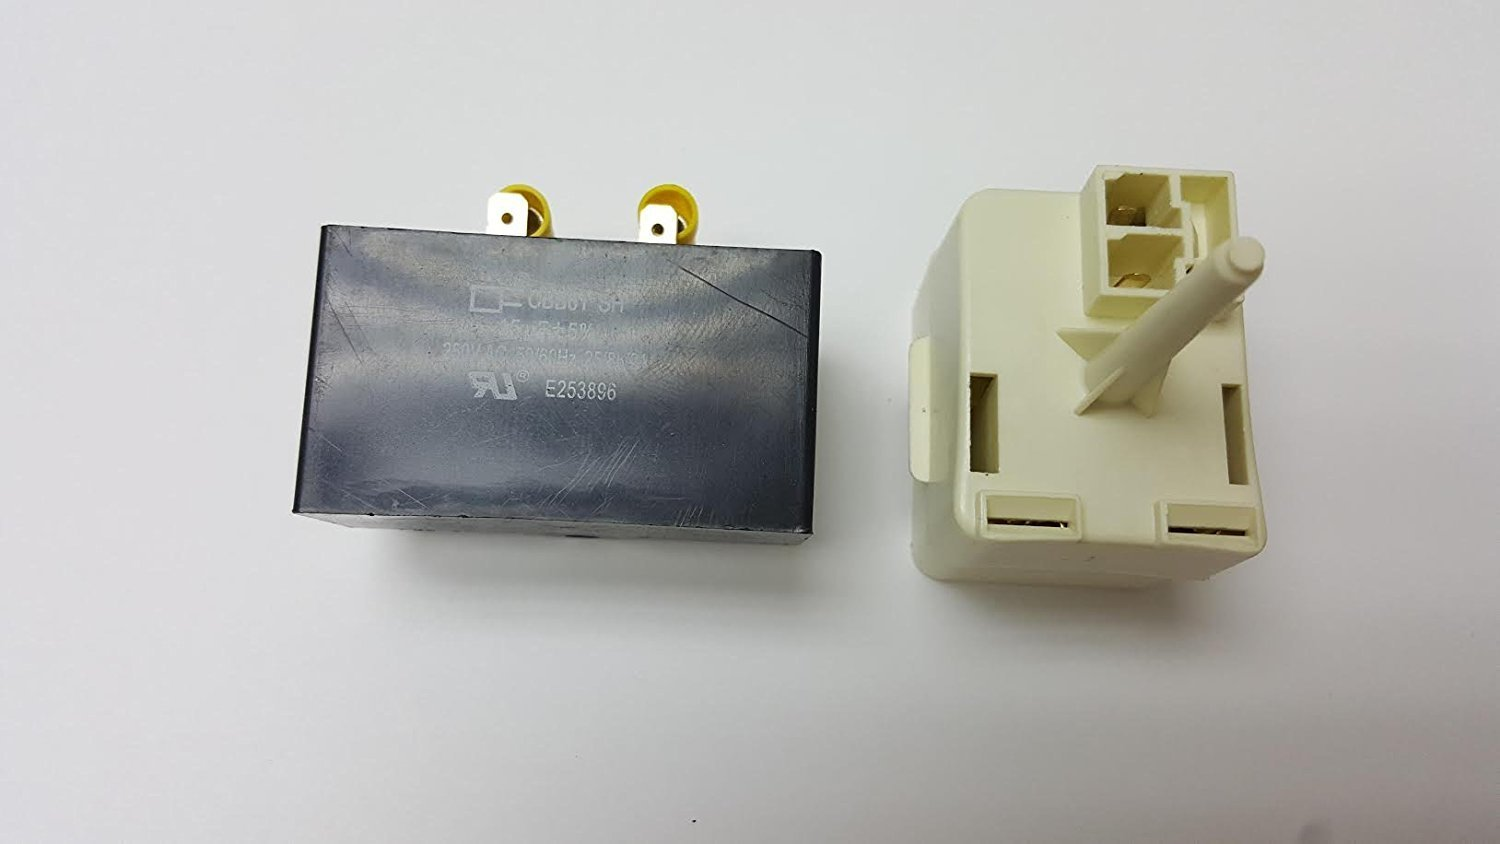 Buy Kenmore Refrigerator Compressor Start Relay And Capacitor Switch In Refrigerators Frigidaire Overload Free Coup613 Fits Ps8689571